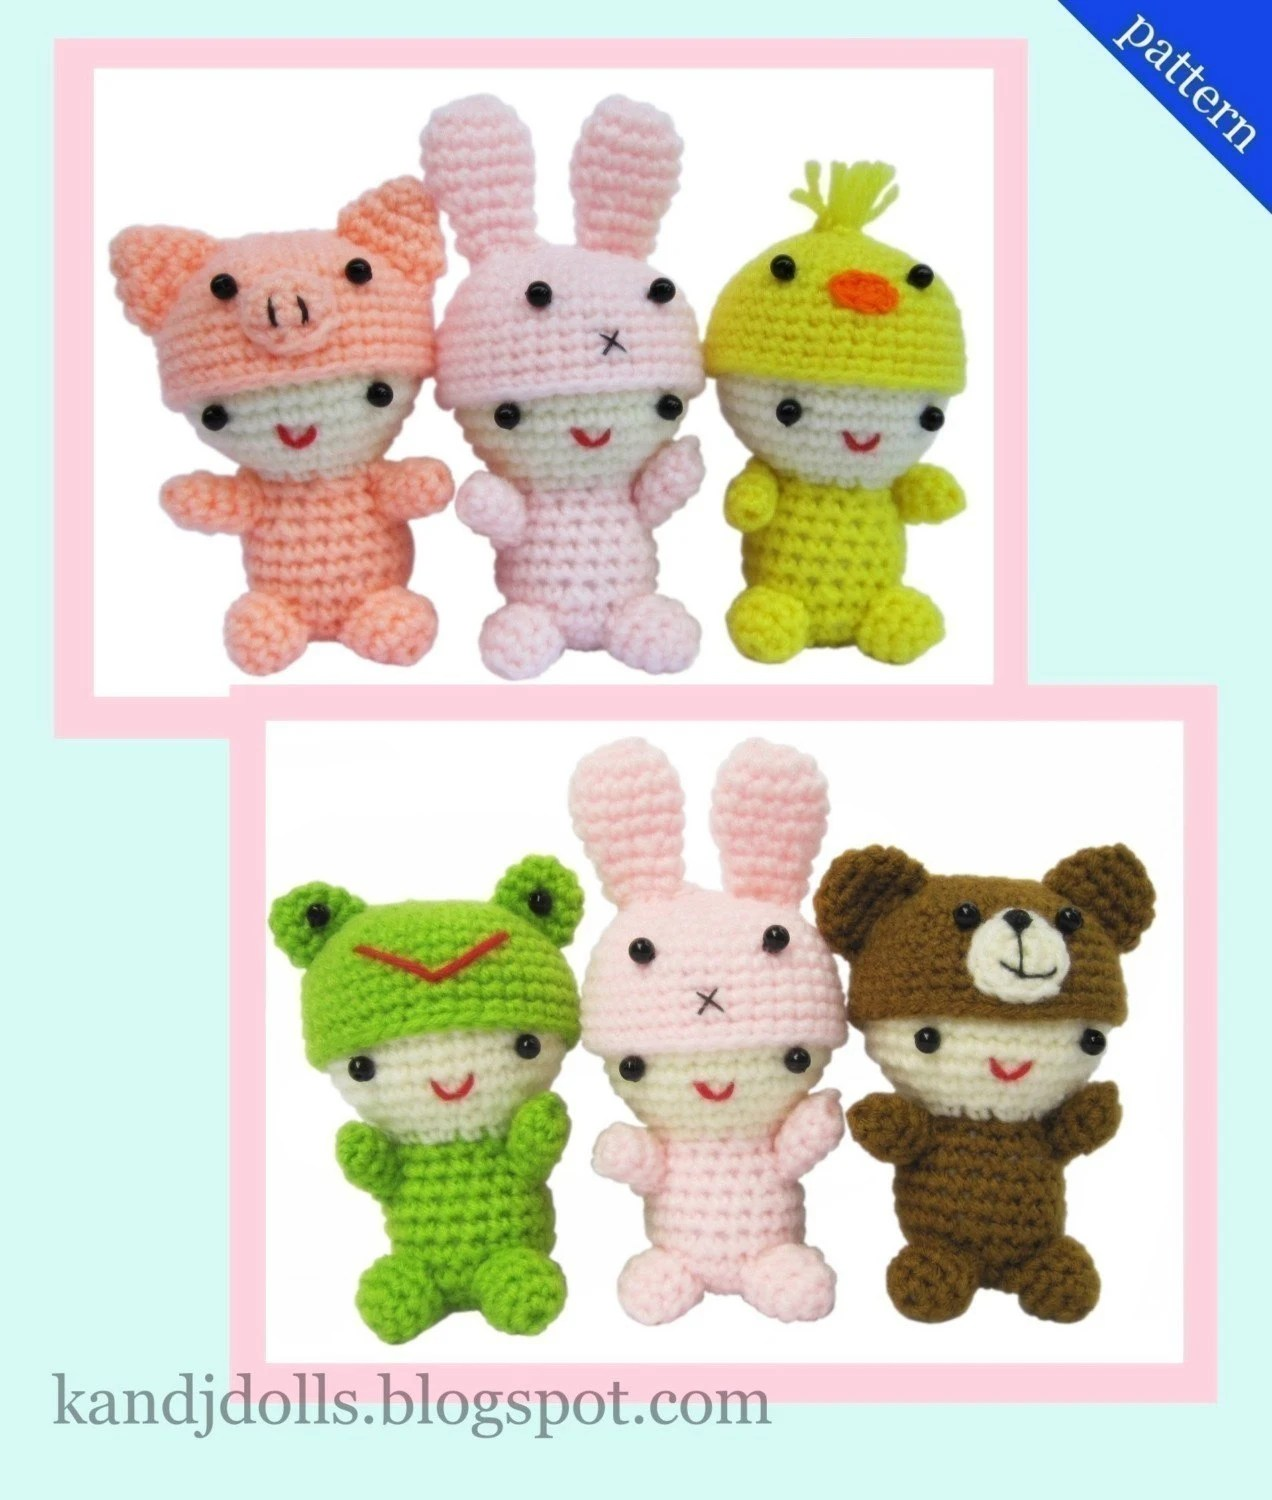 Little Babies with cute Animal caps - PDF Crochet Pattern